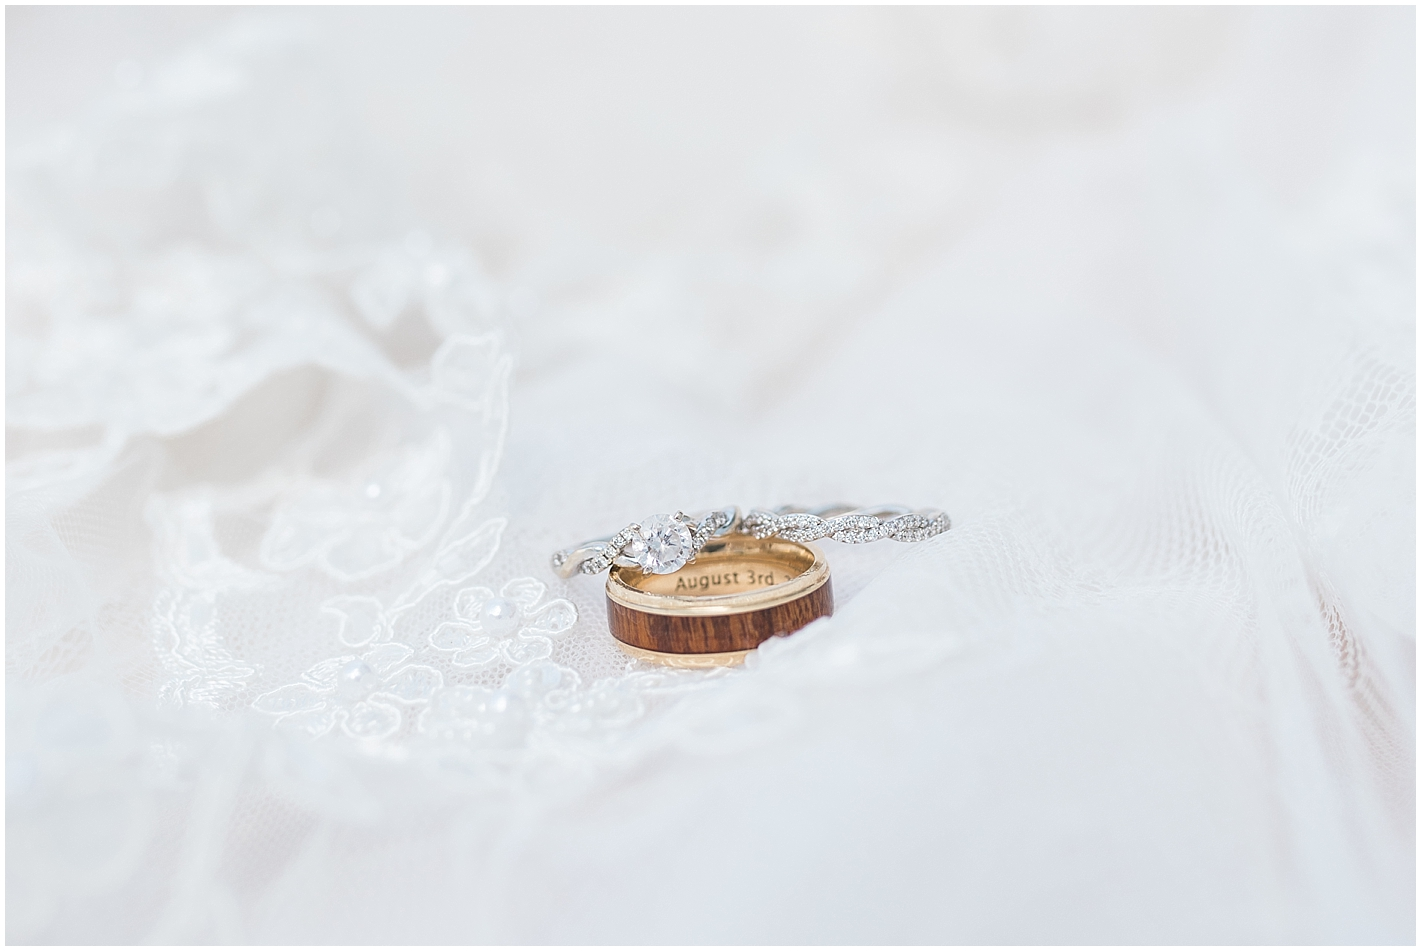 Engraved wedding ring photo by Alyssa Parker Photography